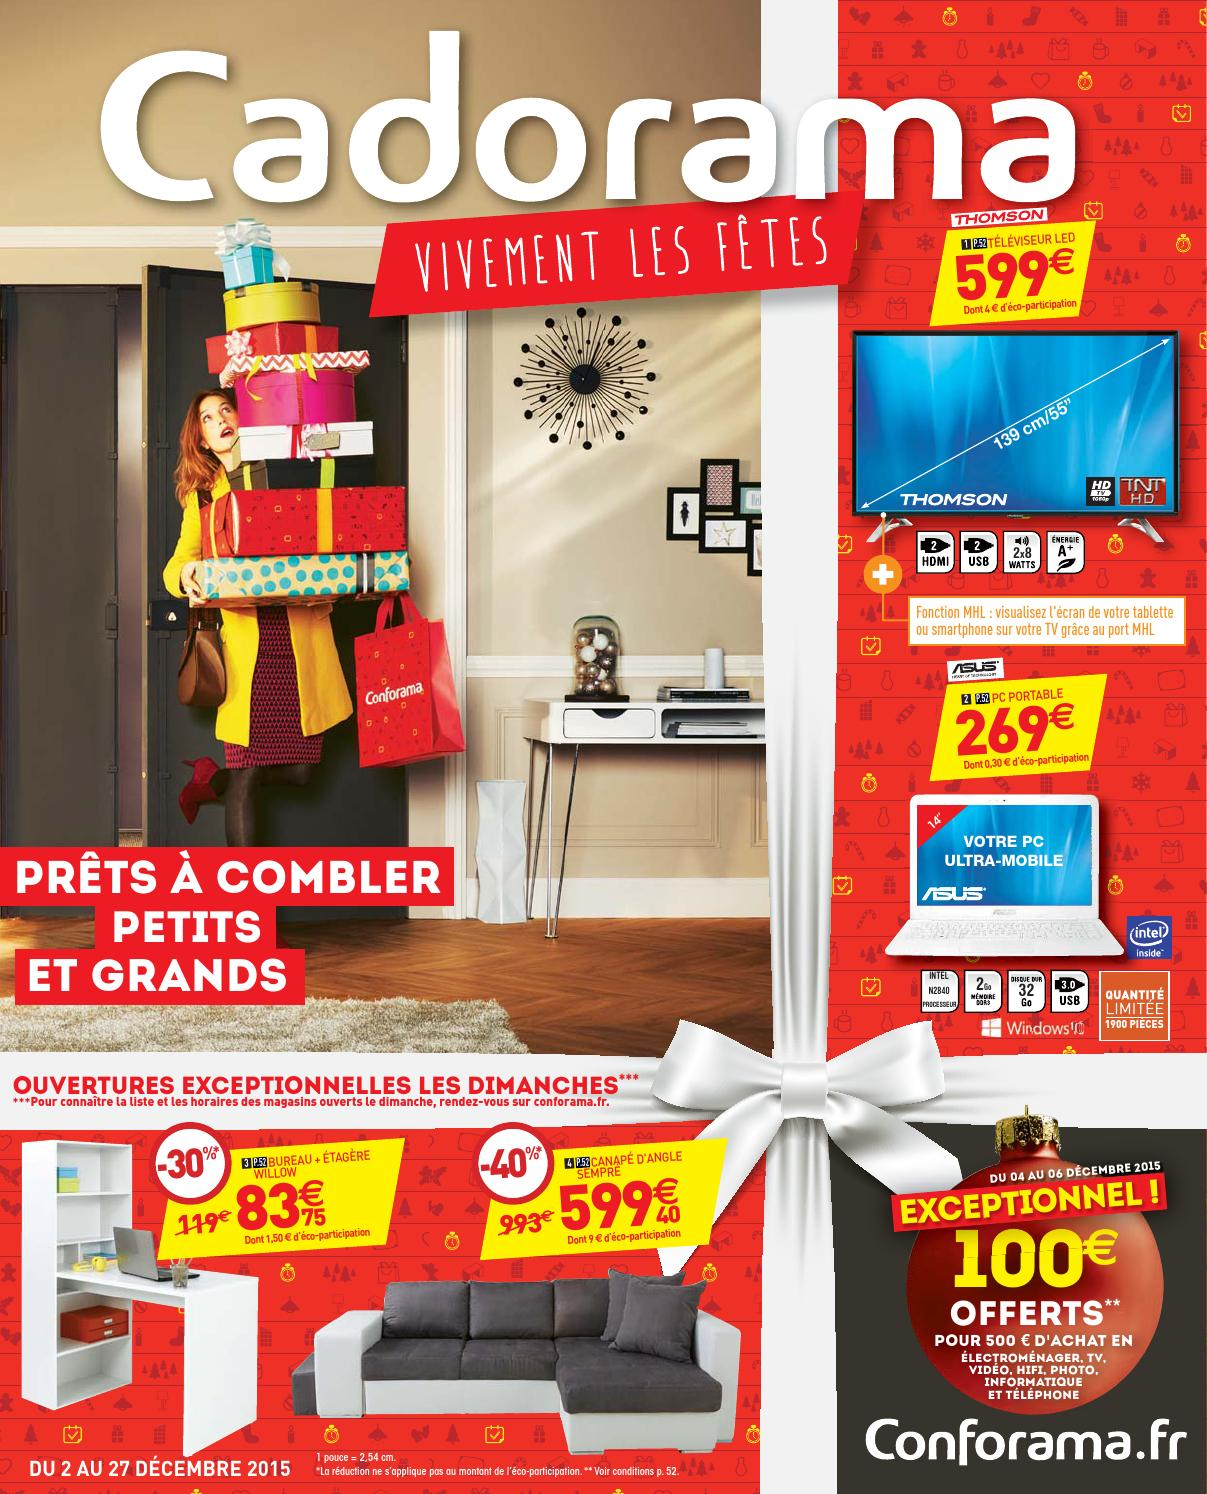 Conforama Rouen Catalogue Conforama Chalon Sur Saone Catalogue Gallery Of Jhsite